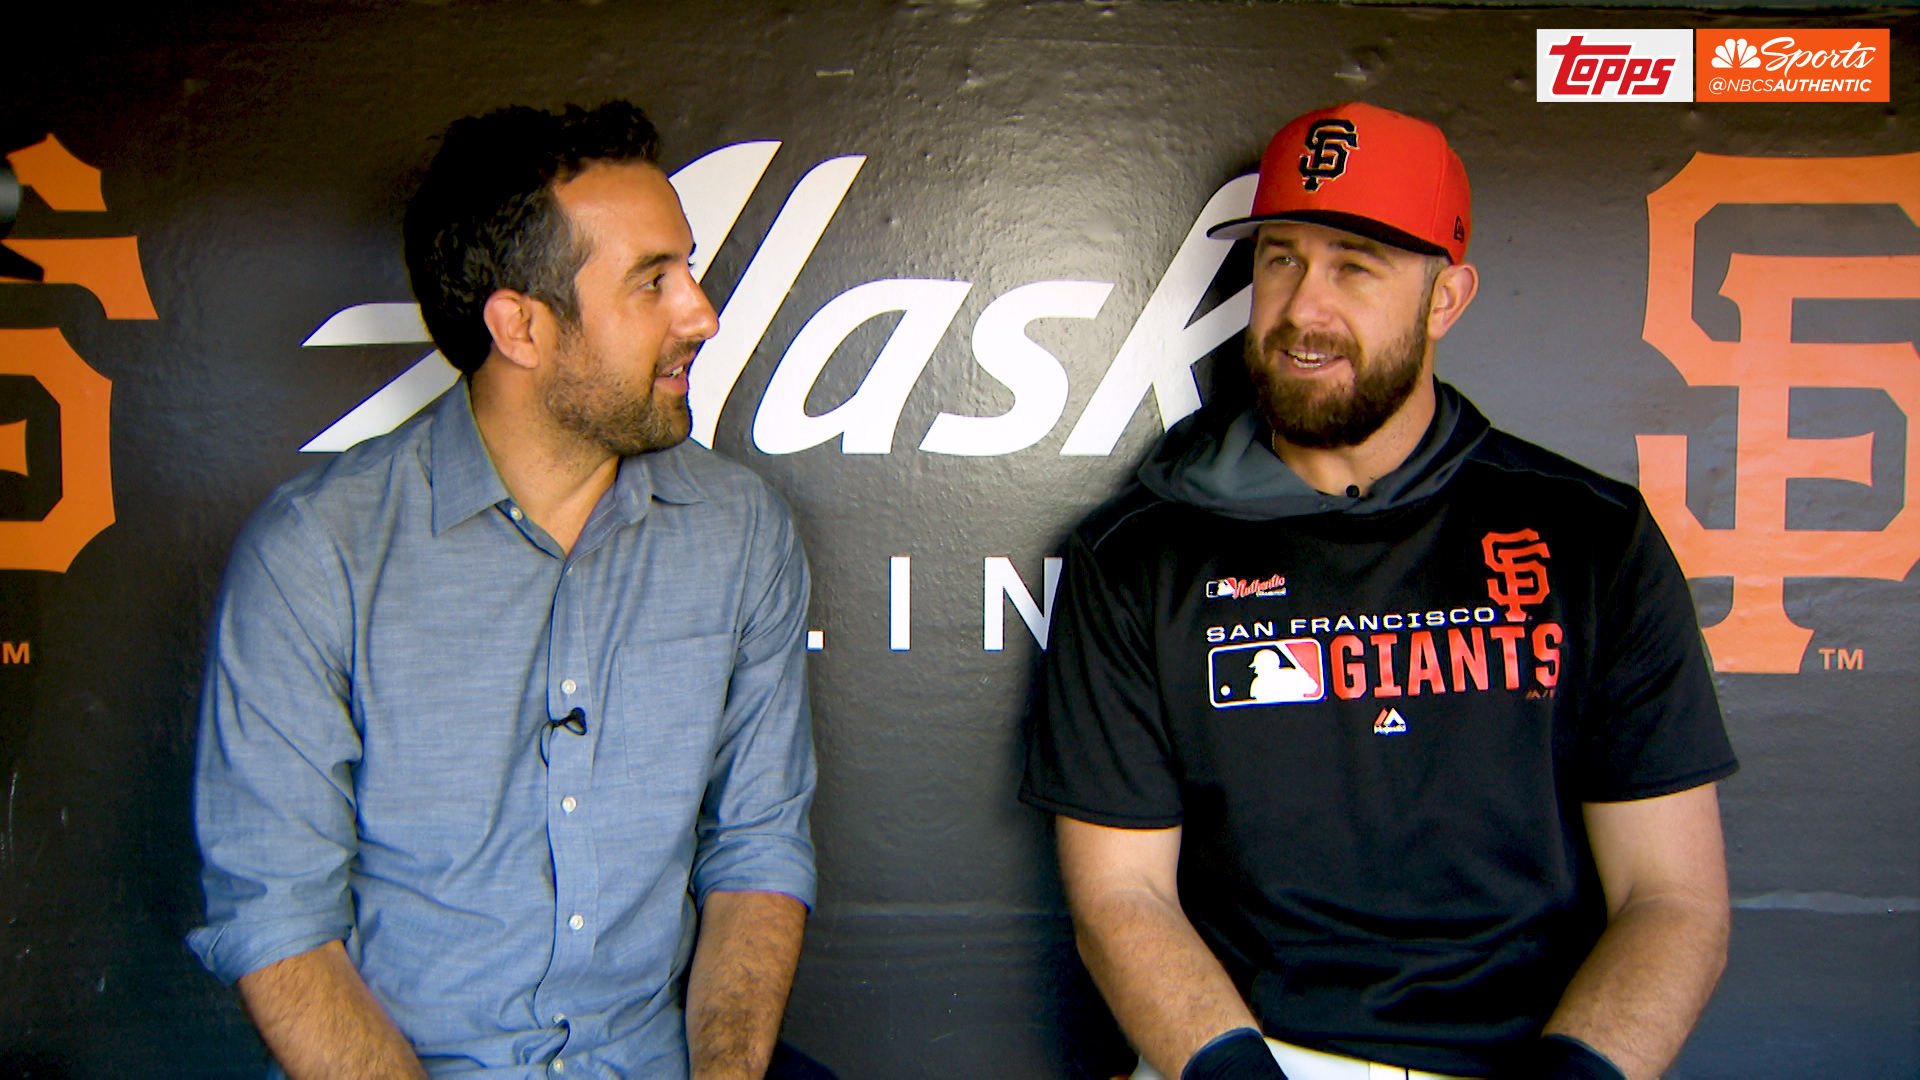 In the Cards: Evan Longoria confirms fun facts on his baseball cards